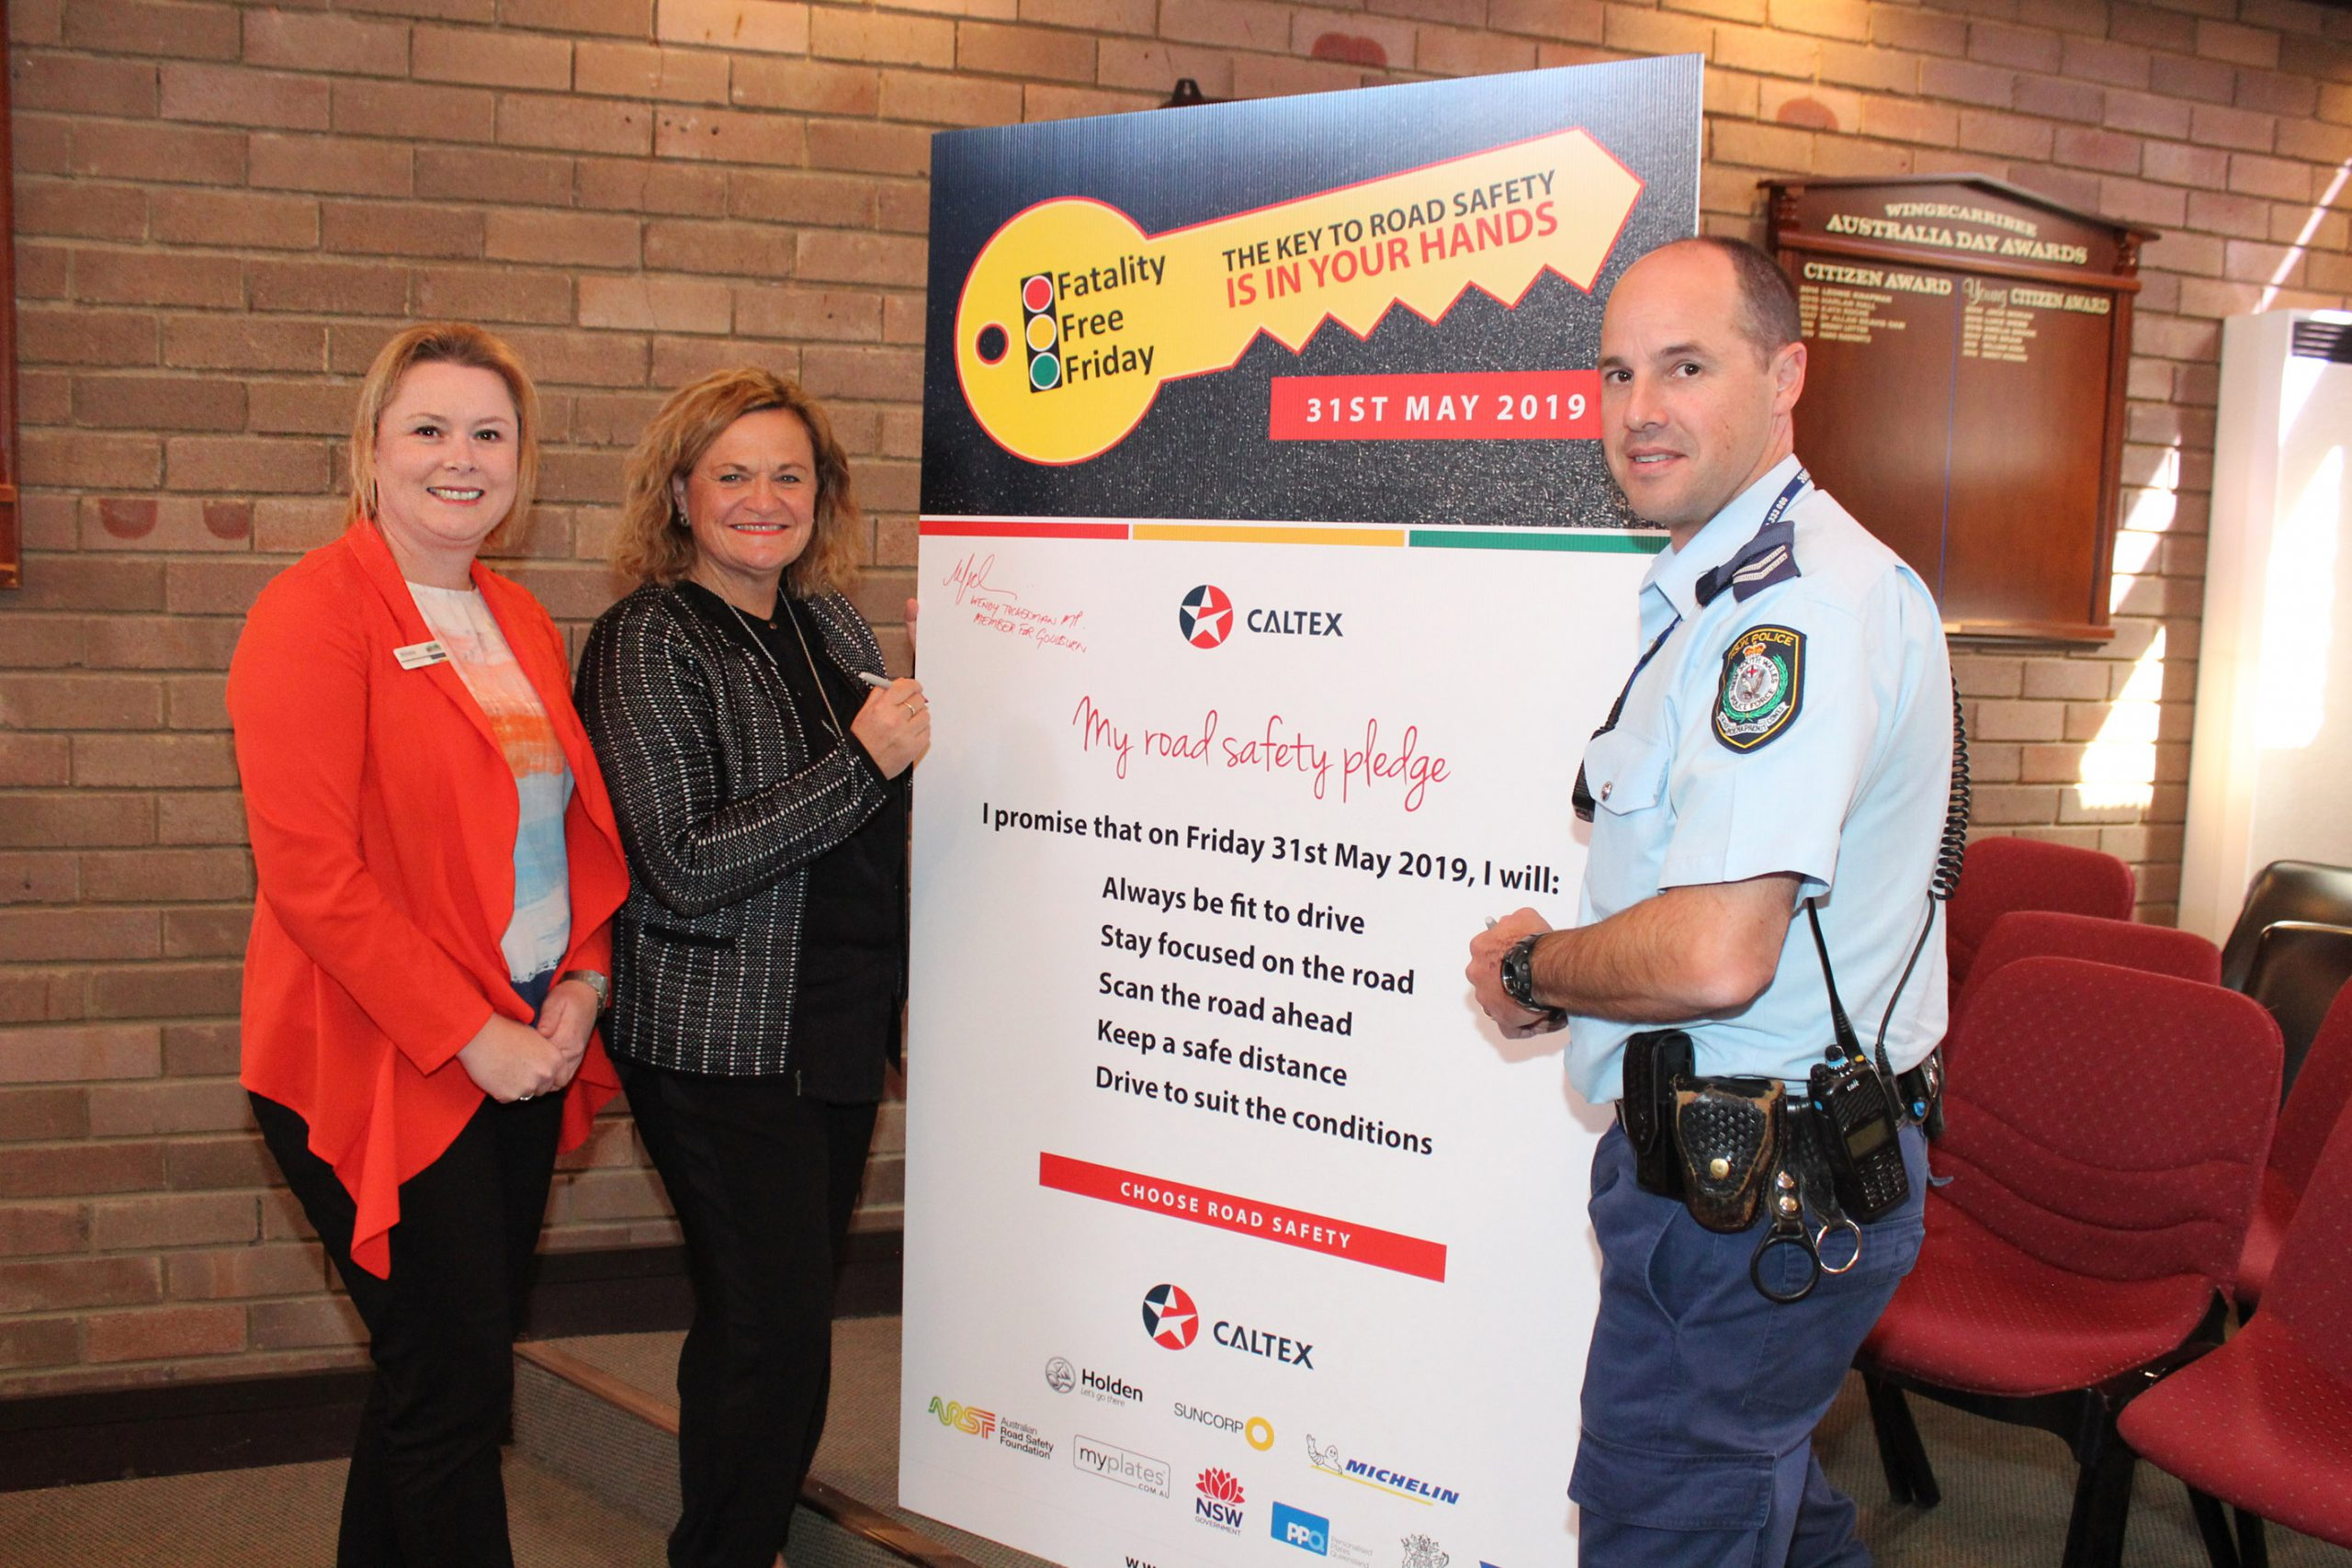 Council's Road Safety Officer, Member for Goulburn Wendy Tuckerman and Senior Constable Scott Waples from the Southern Highlands Highway Patrol take the Fatality Free Friday pledge.